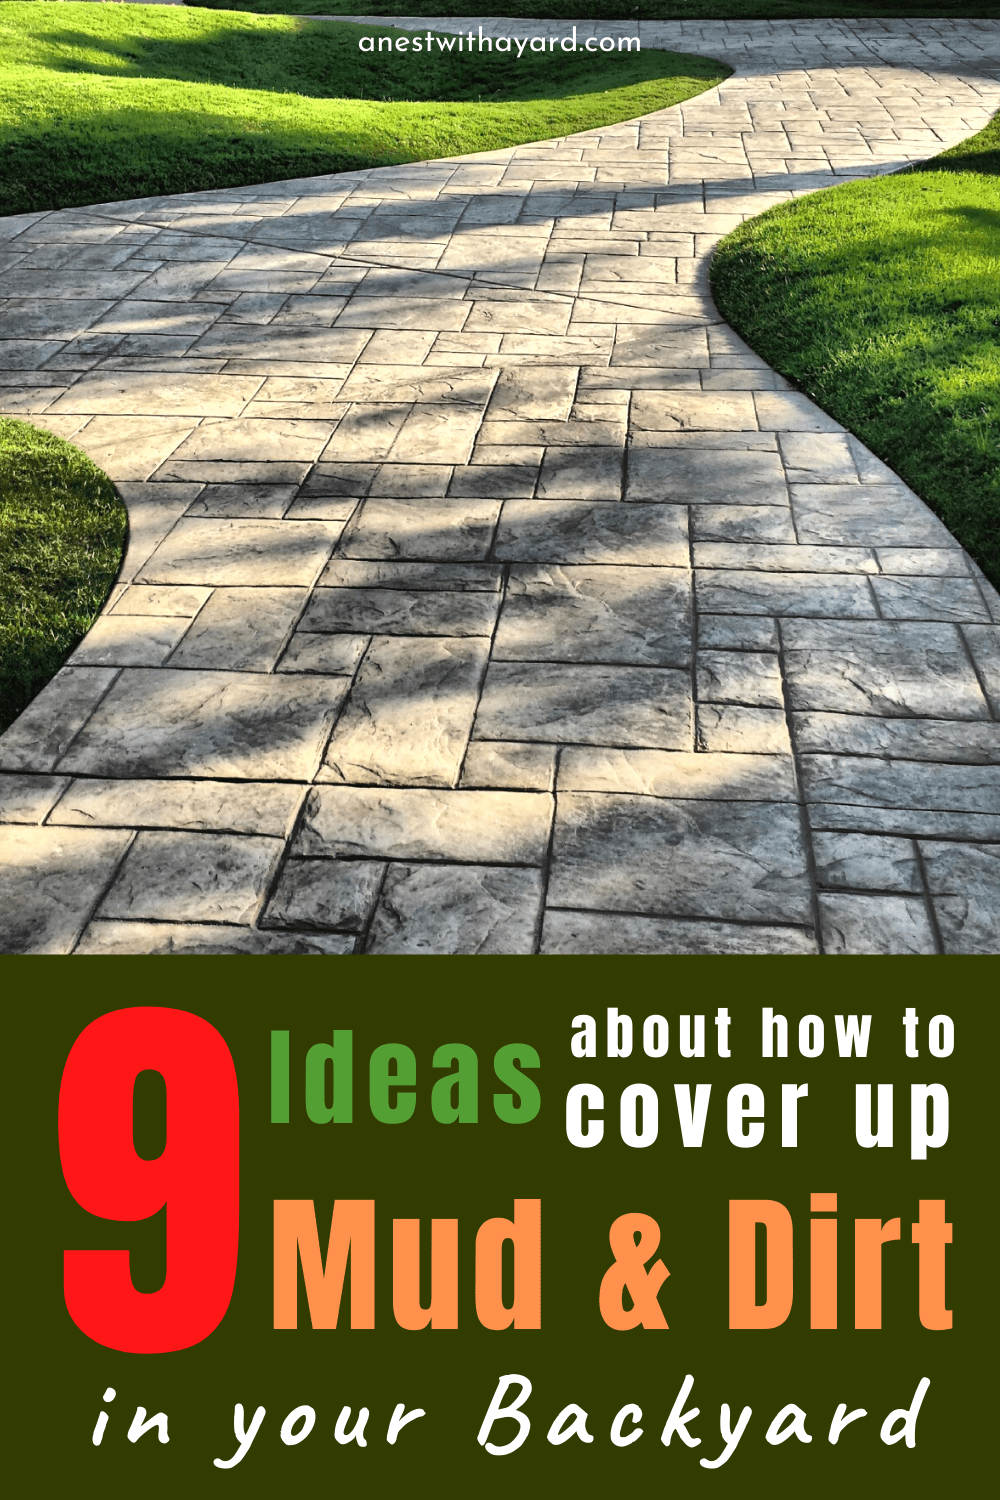 How To Cover Up Mud In Backyard In 2020 - A Nest With A Yard